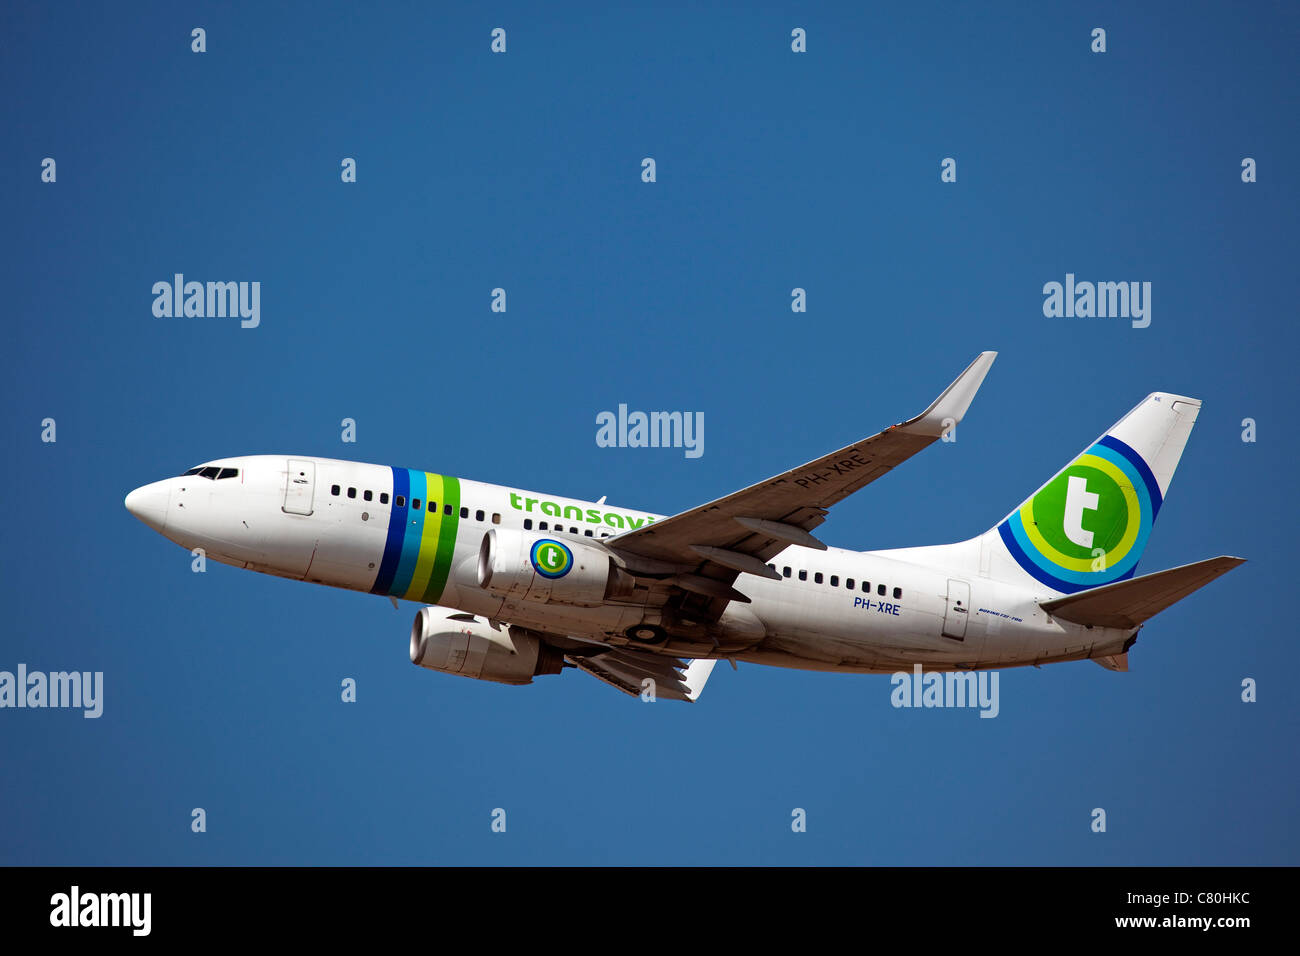 Plane taking off at the airport of Malaga Costa del Sol Andalusia Spain - Stock Image